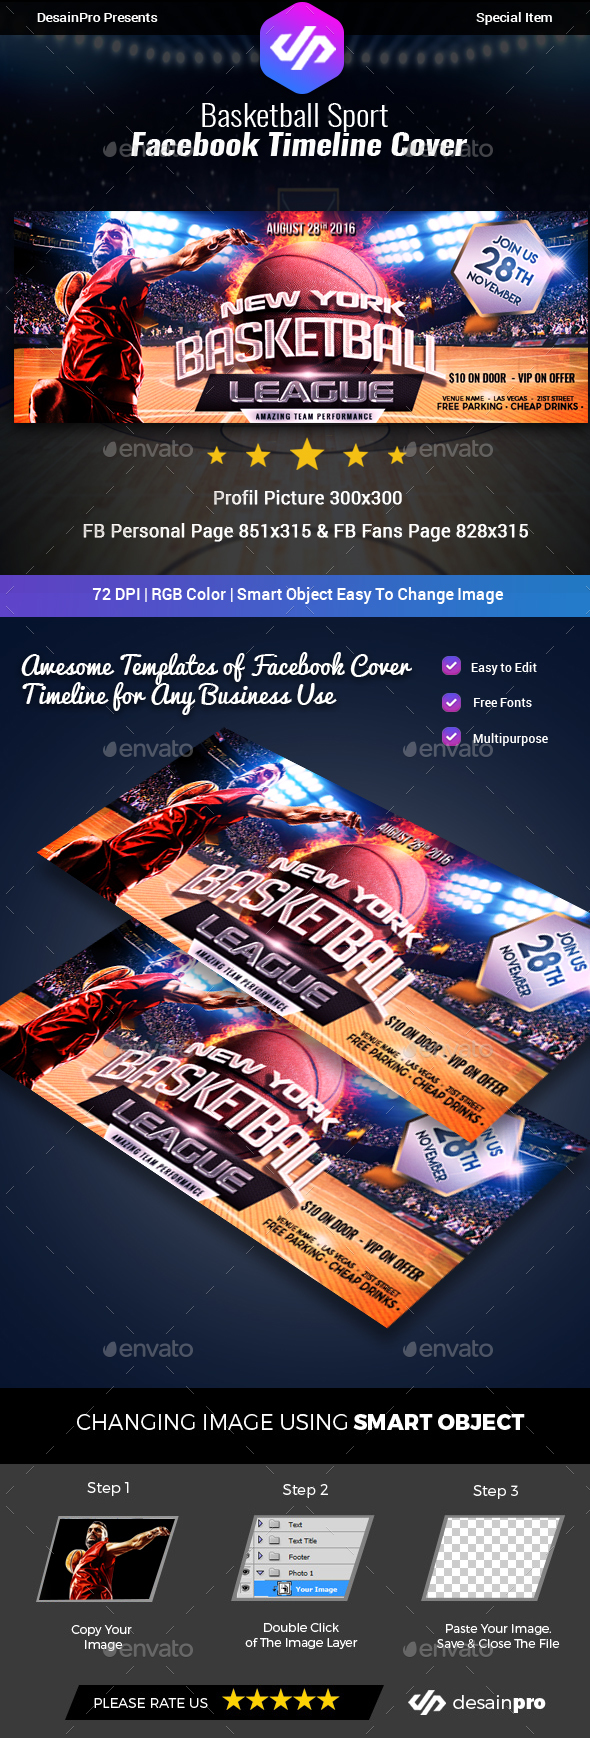 GraphicRiver Basketball Facebook Cover Timeline 20383000